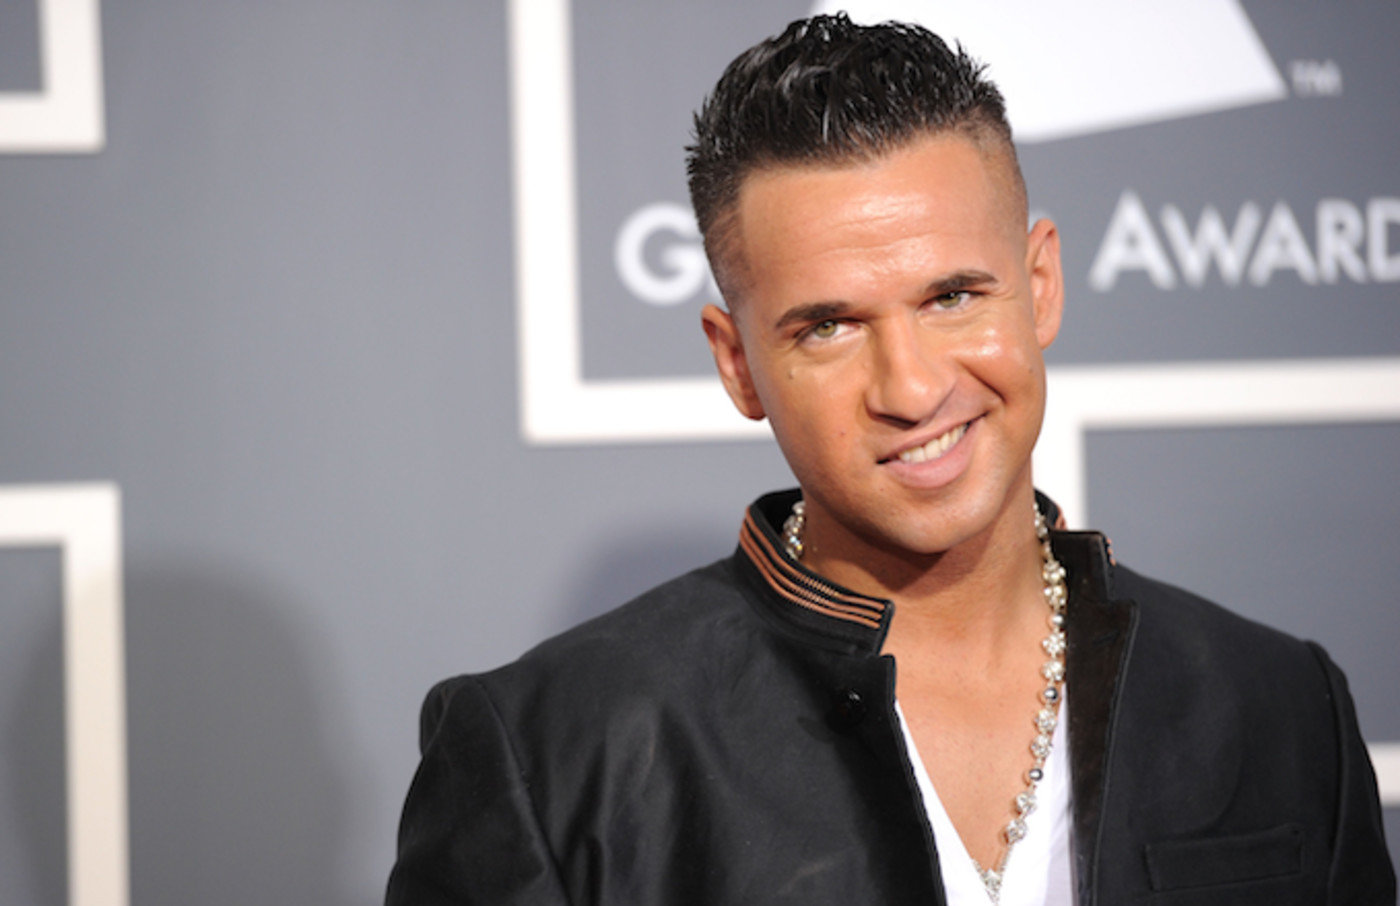 Jersey Shores Mike The Situation Sorrentino releases